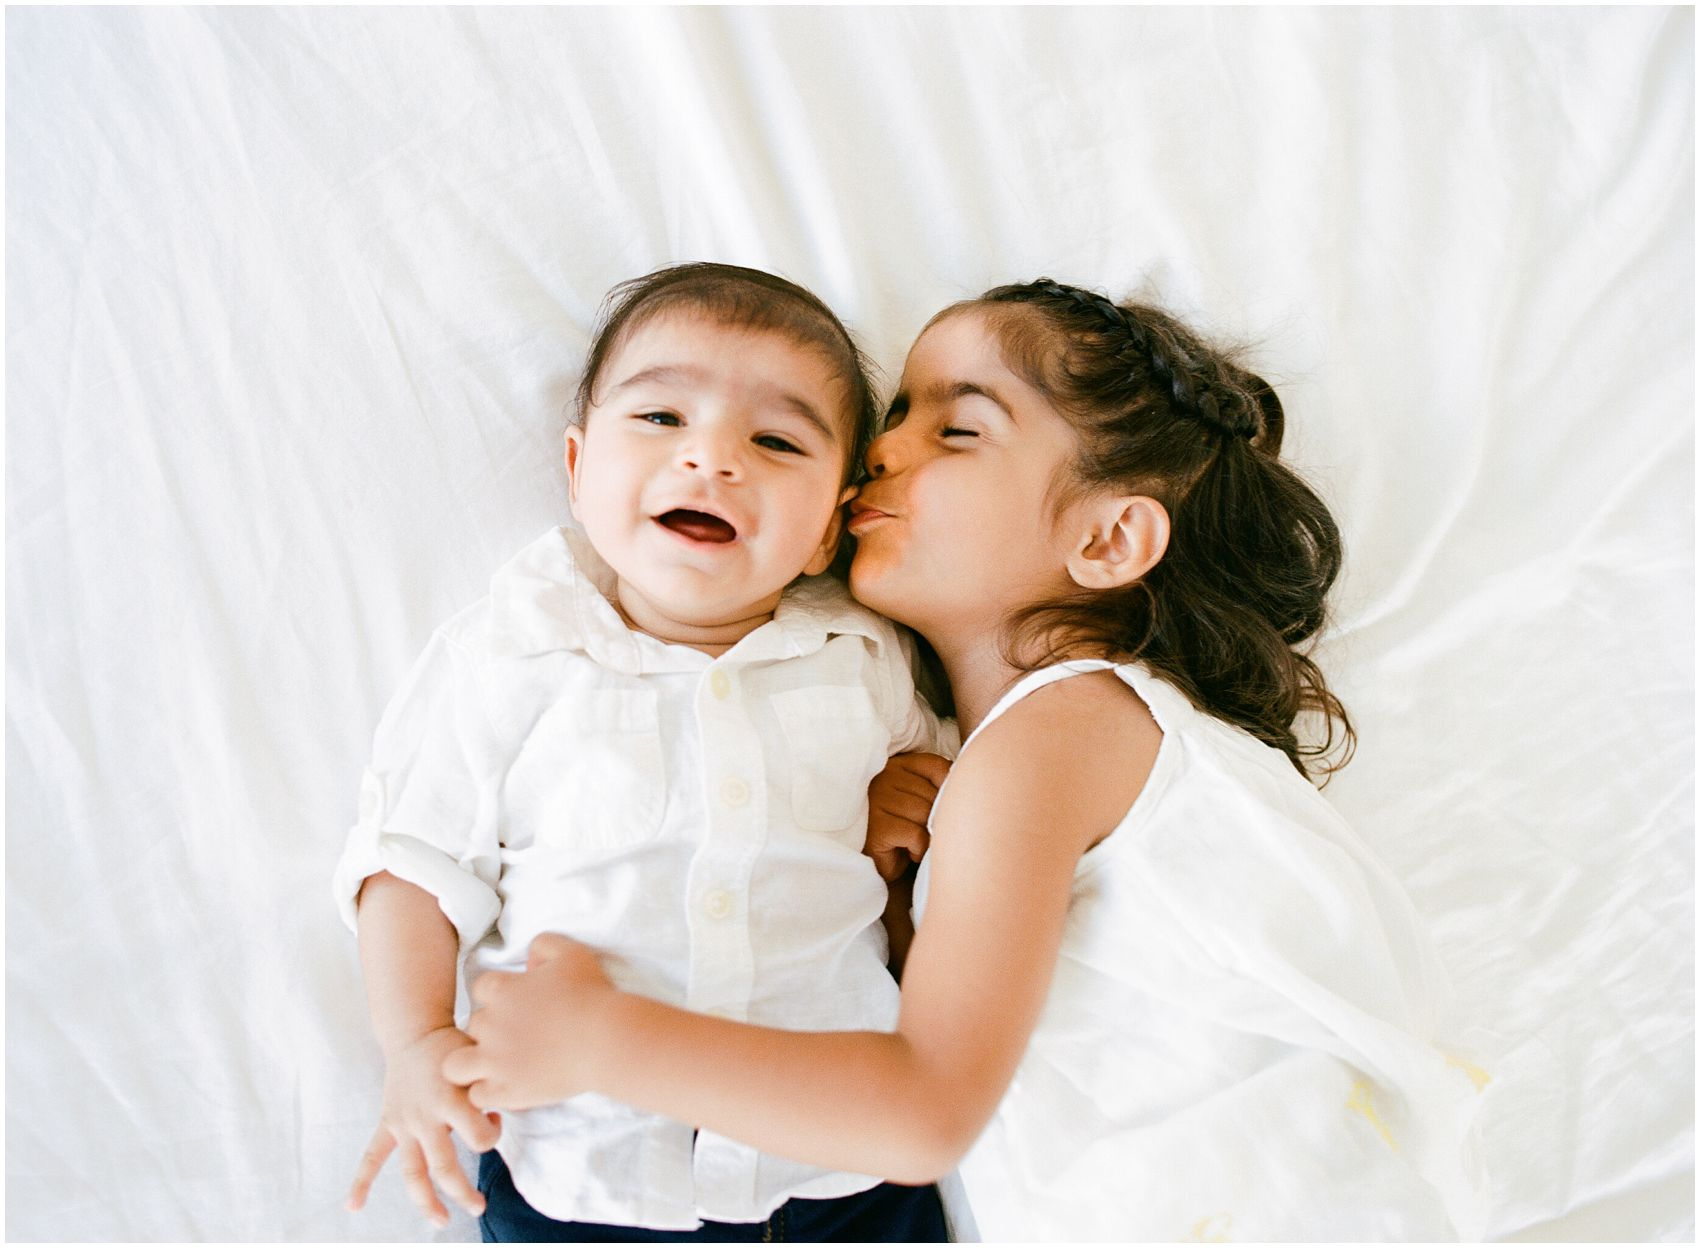 little sister kissing her baby brother laying on a white comforter